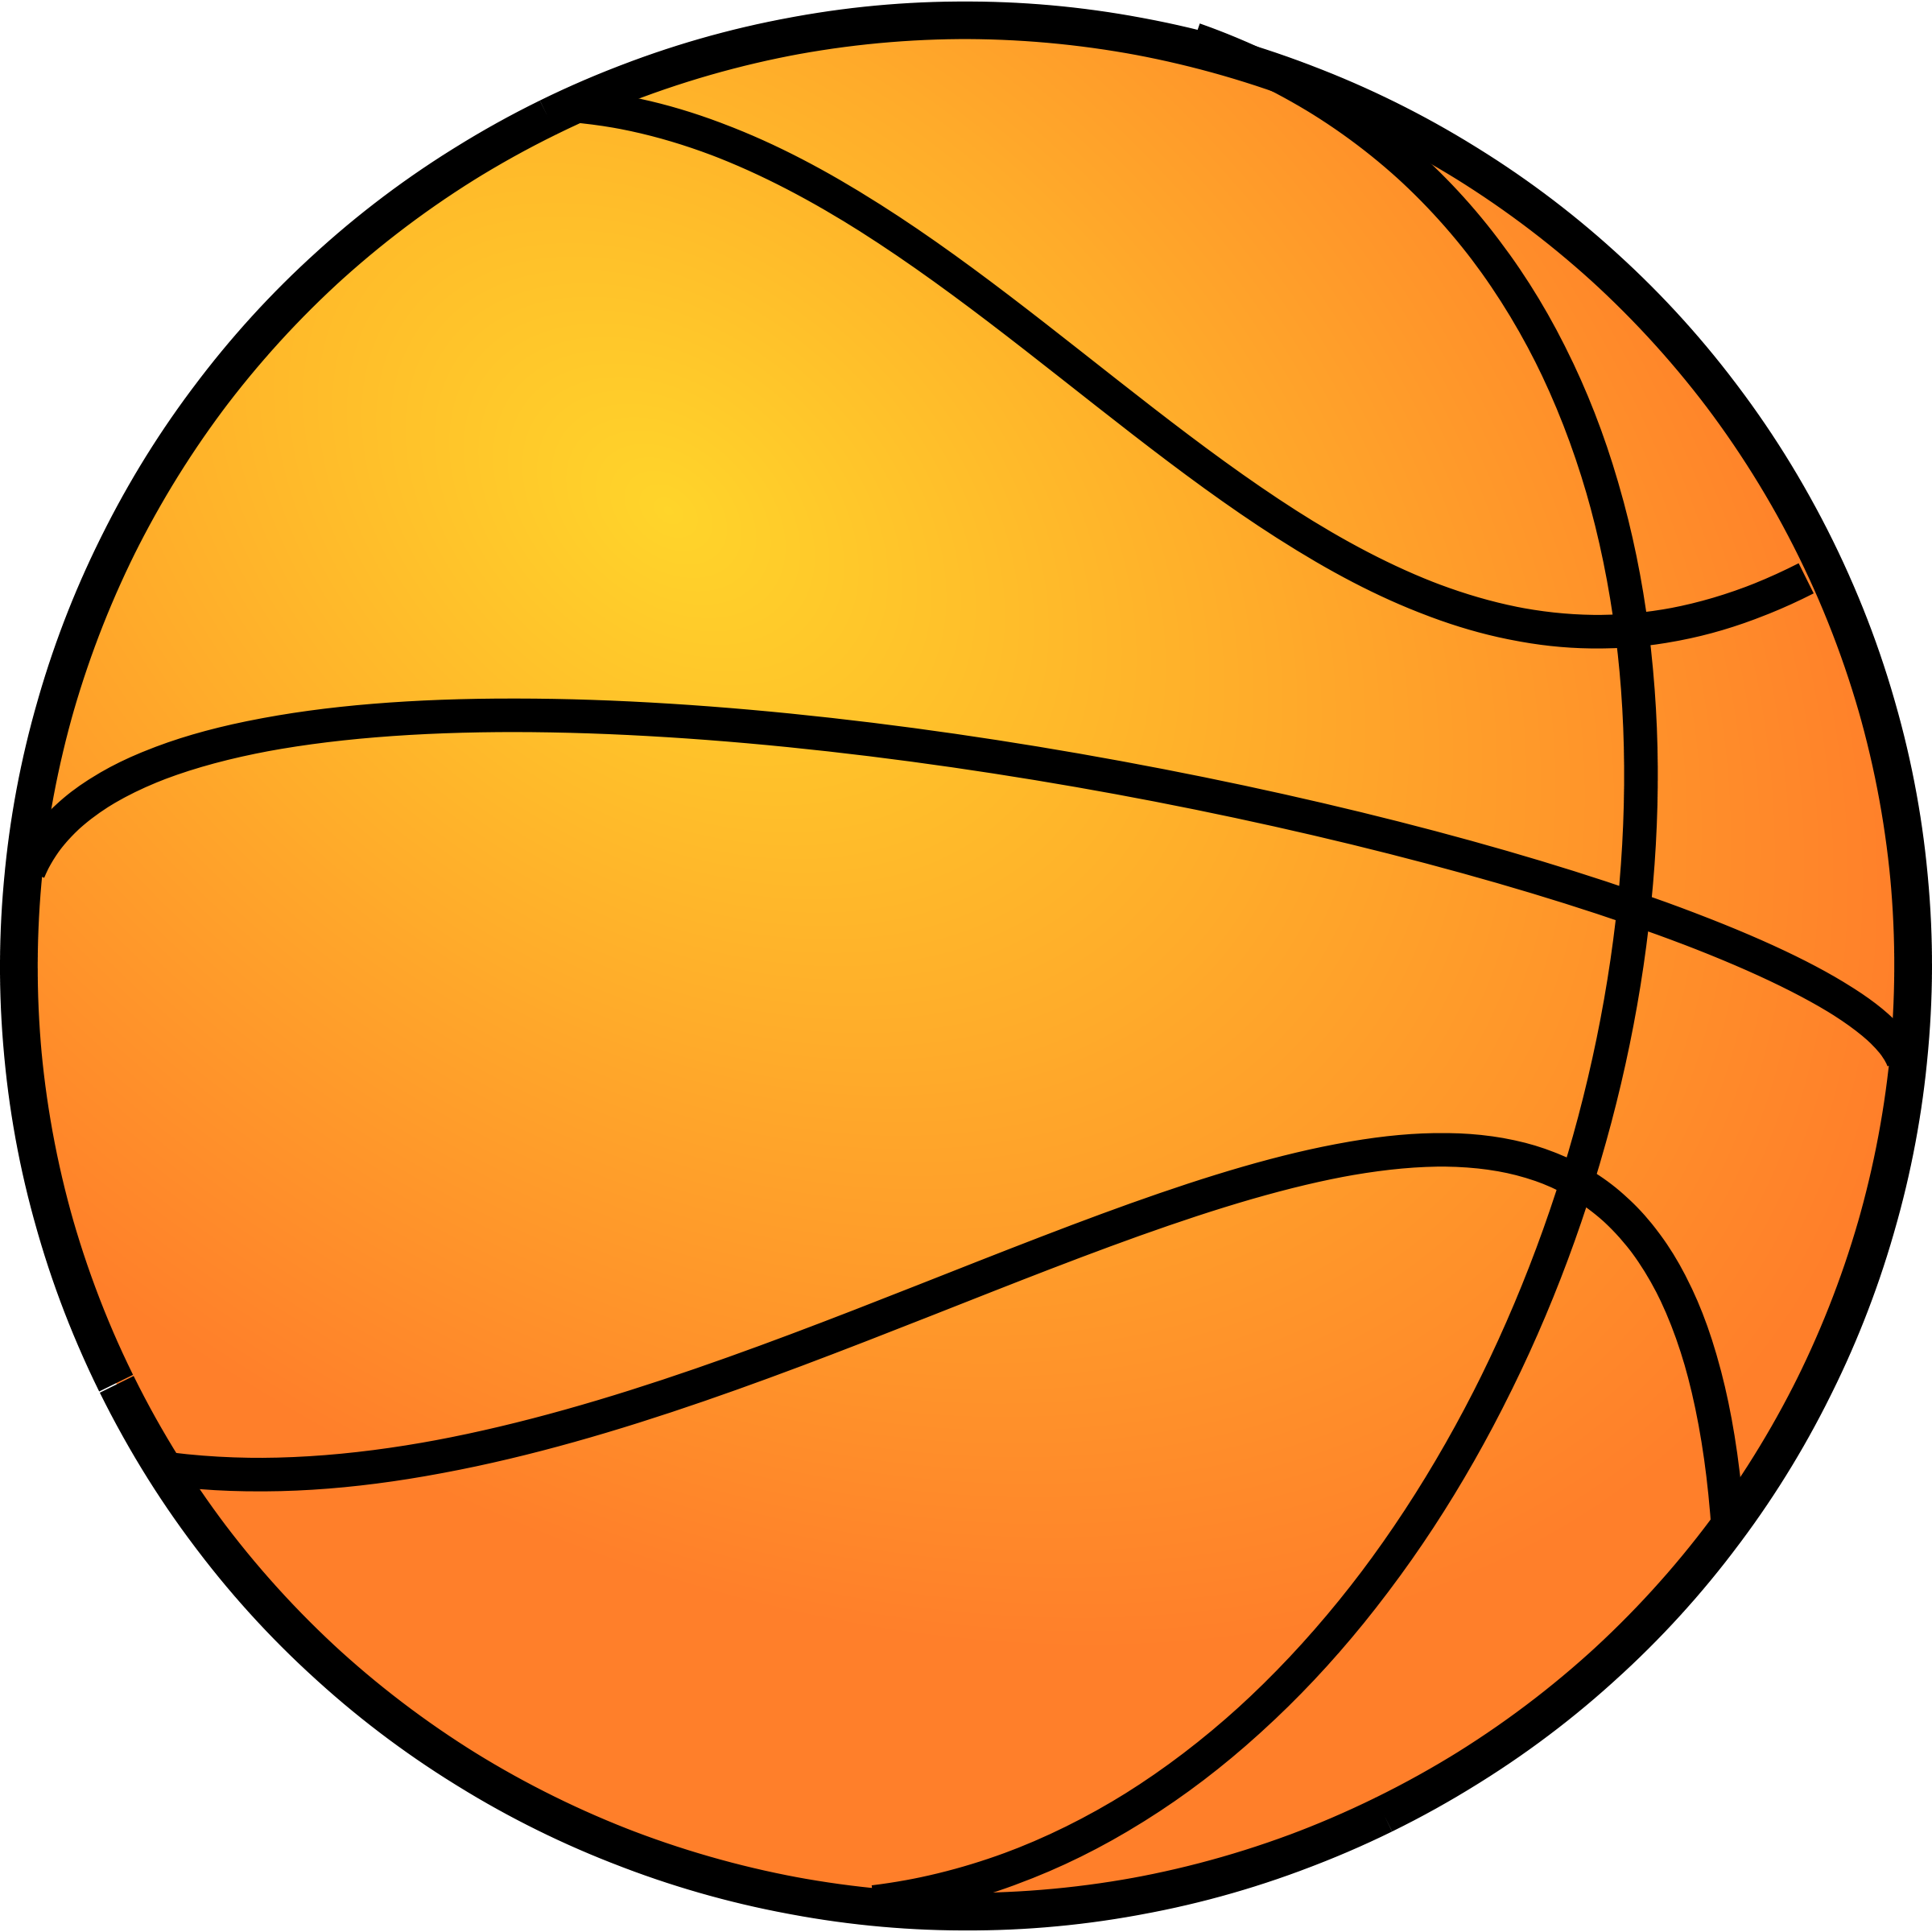 Basketball Clipart-basketball clipart-3